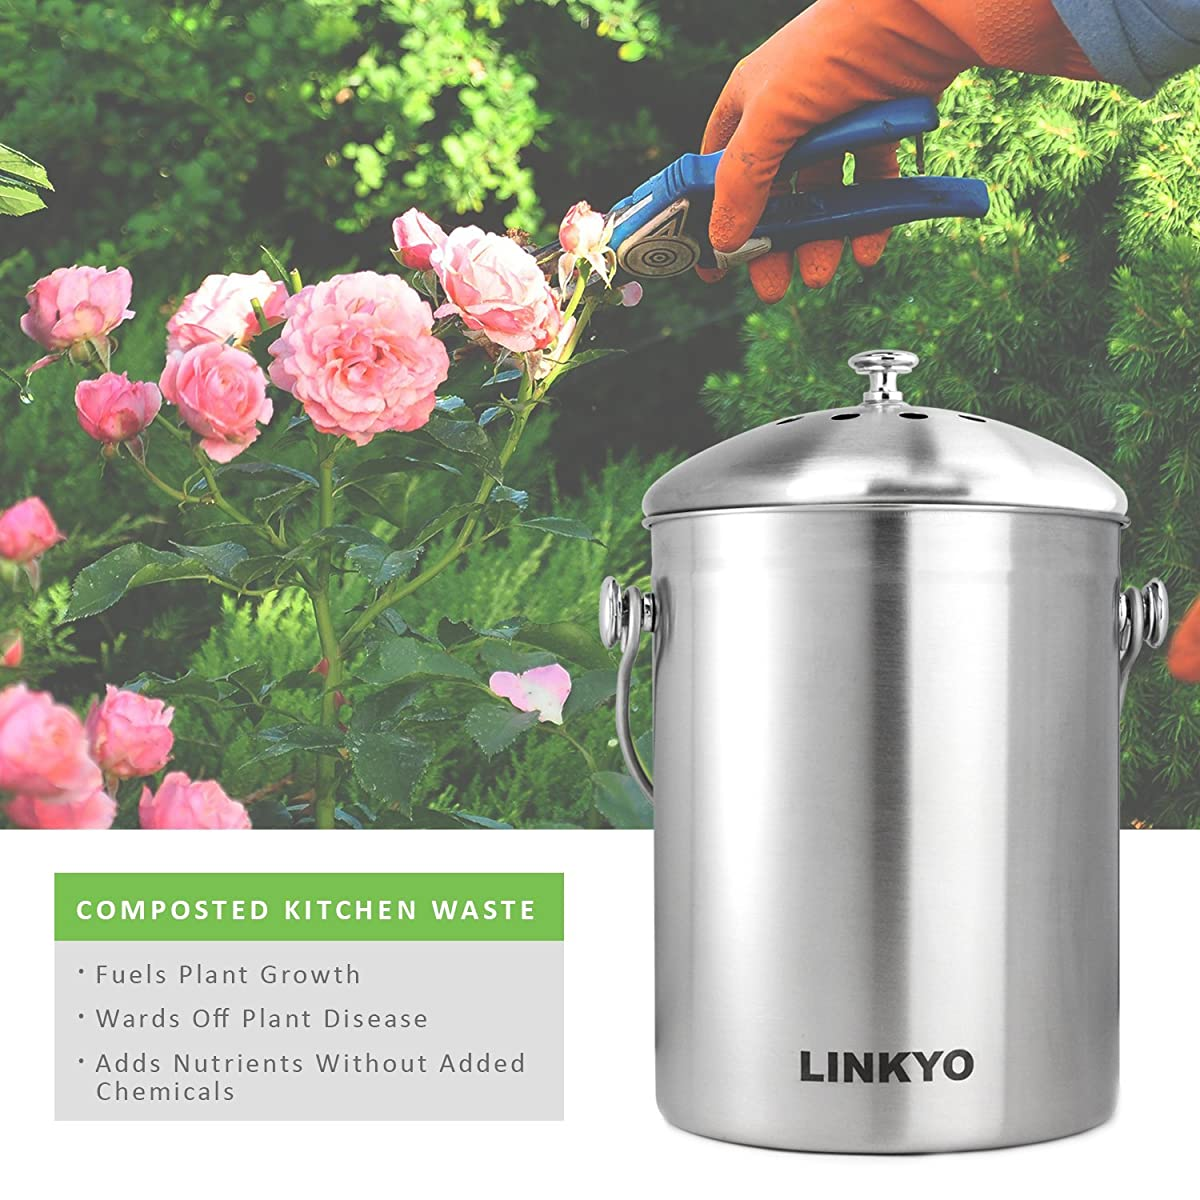 LINKYO Compost Bin - 4 Filters Stainless Steel Kitchen Composter (1 Gallon)